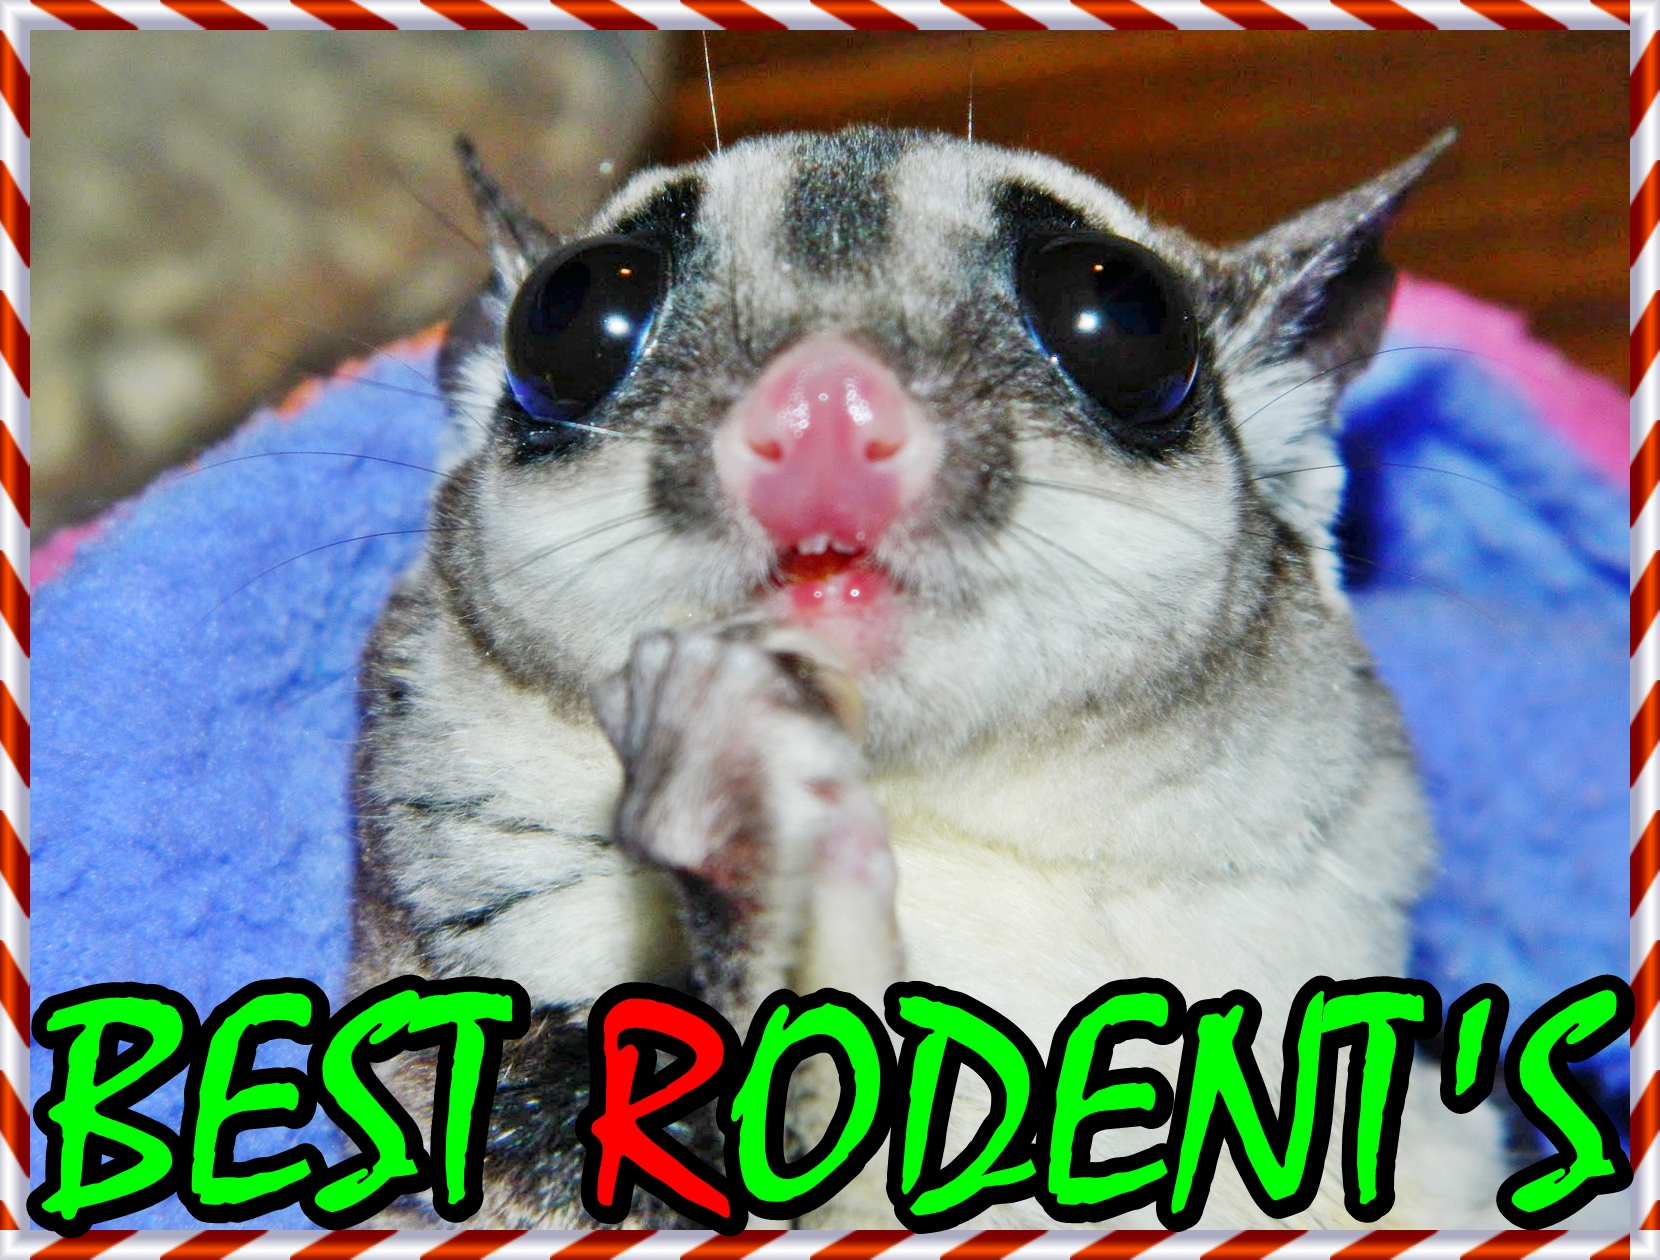 BEST RODENTS